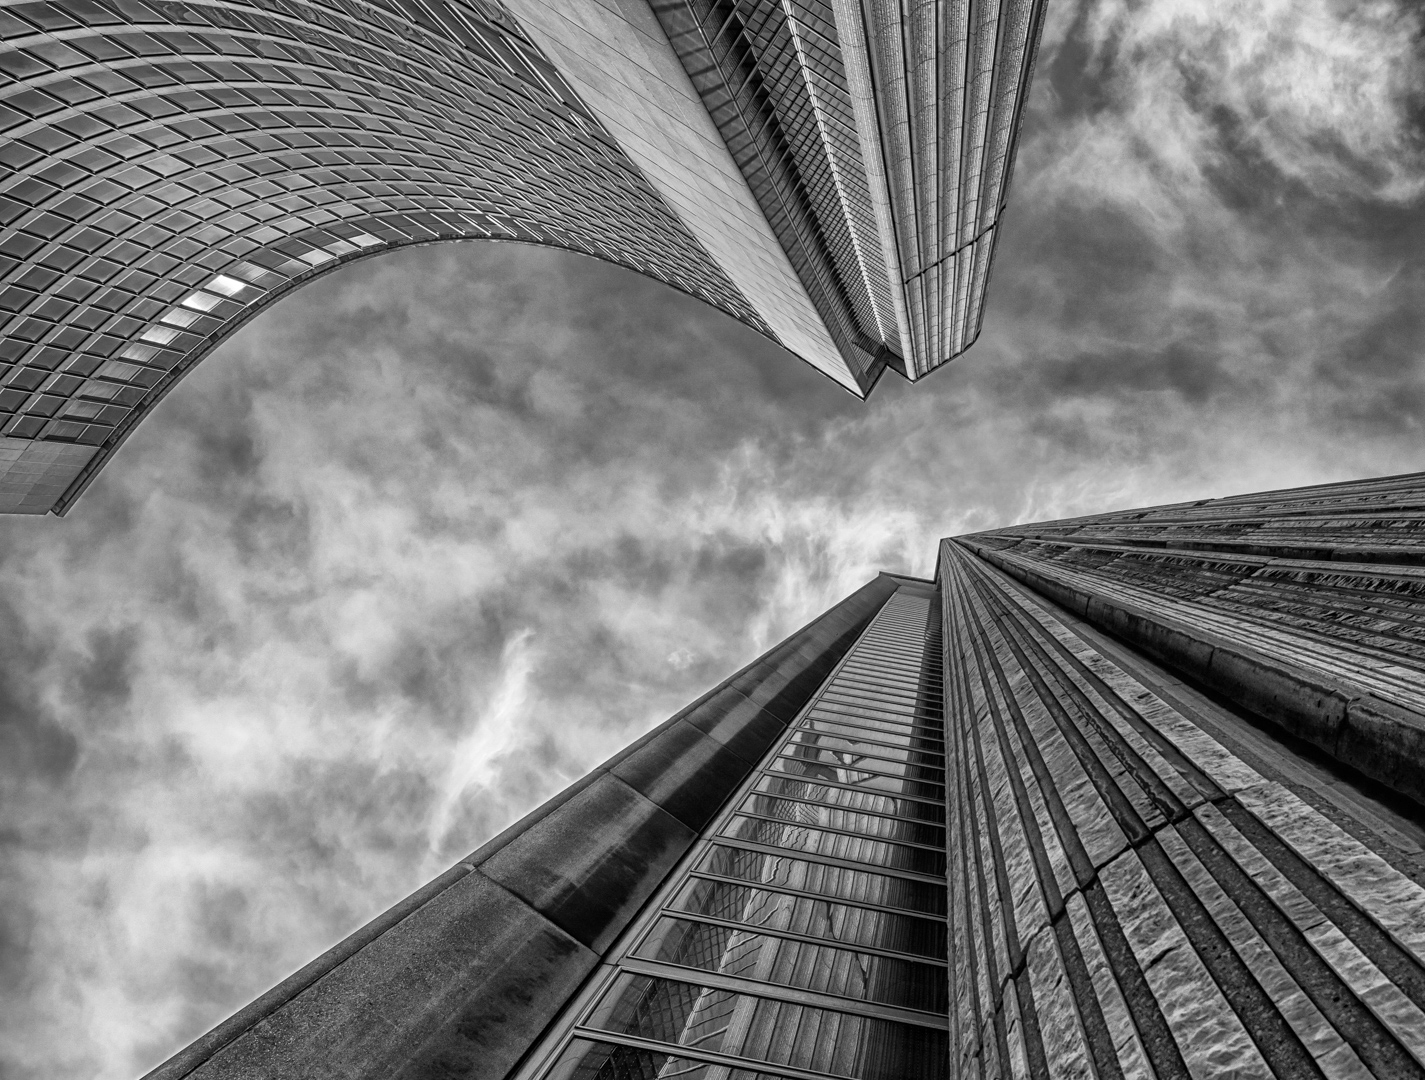 Curved Towers in Contrast